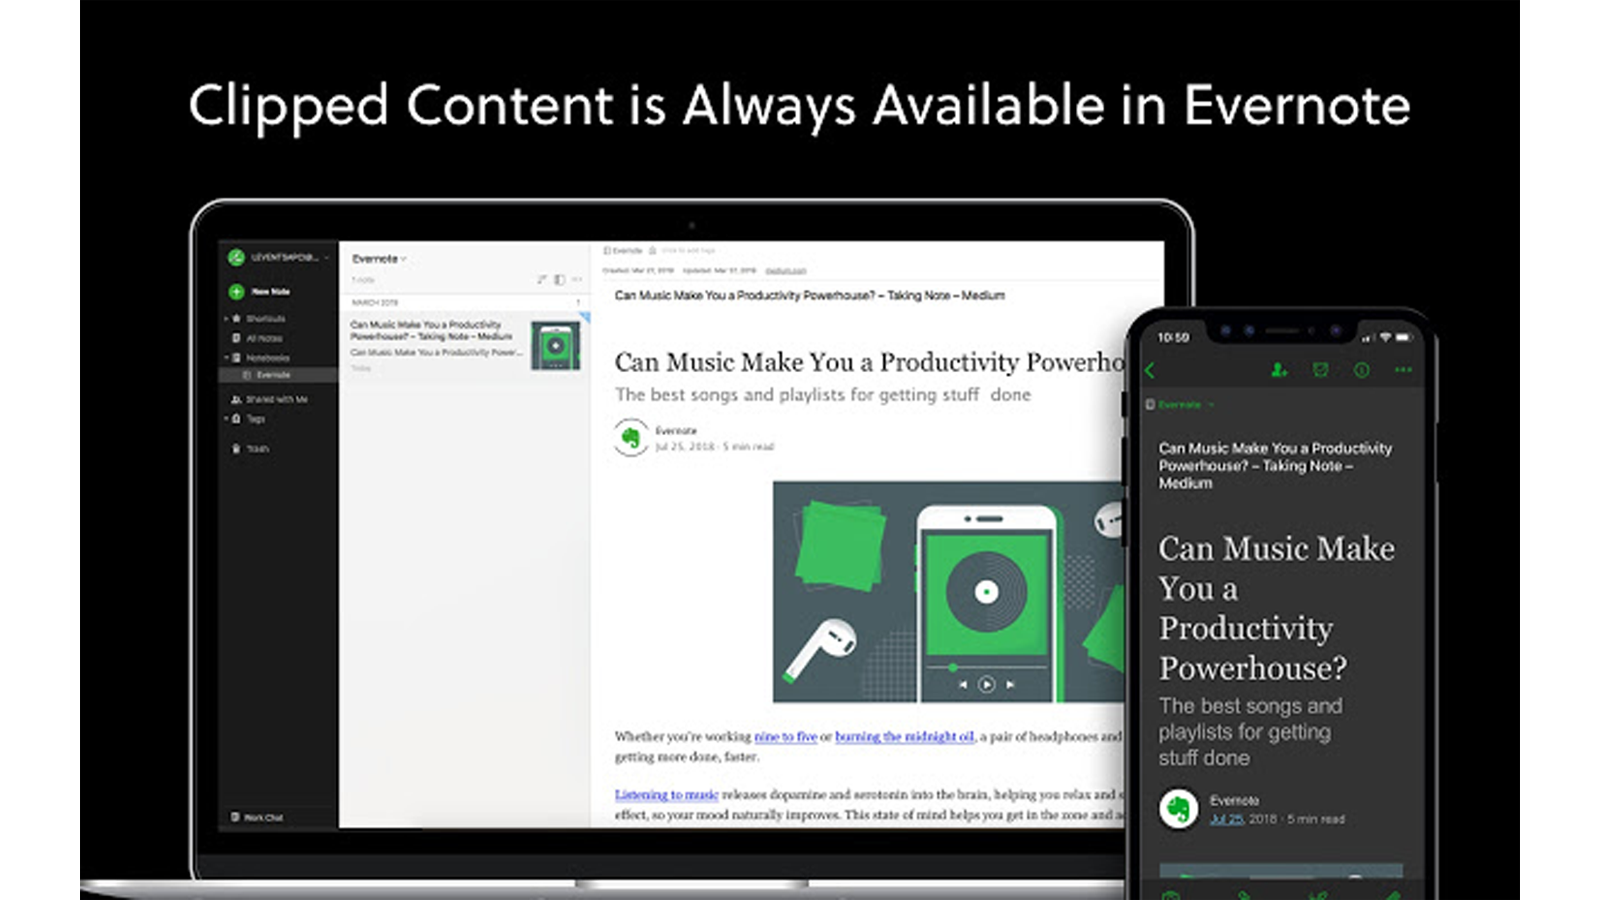 Evernote Web Clipper lets you save a clip of an article or full web page for later viewing or annotating